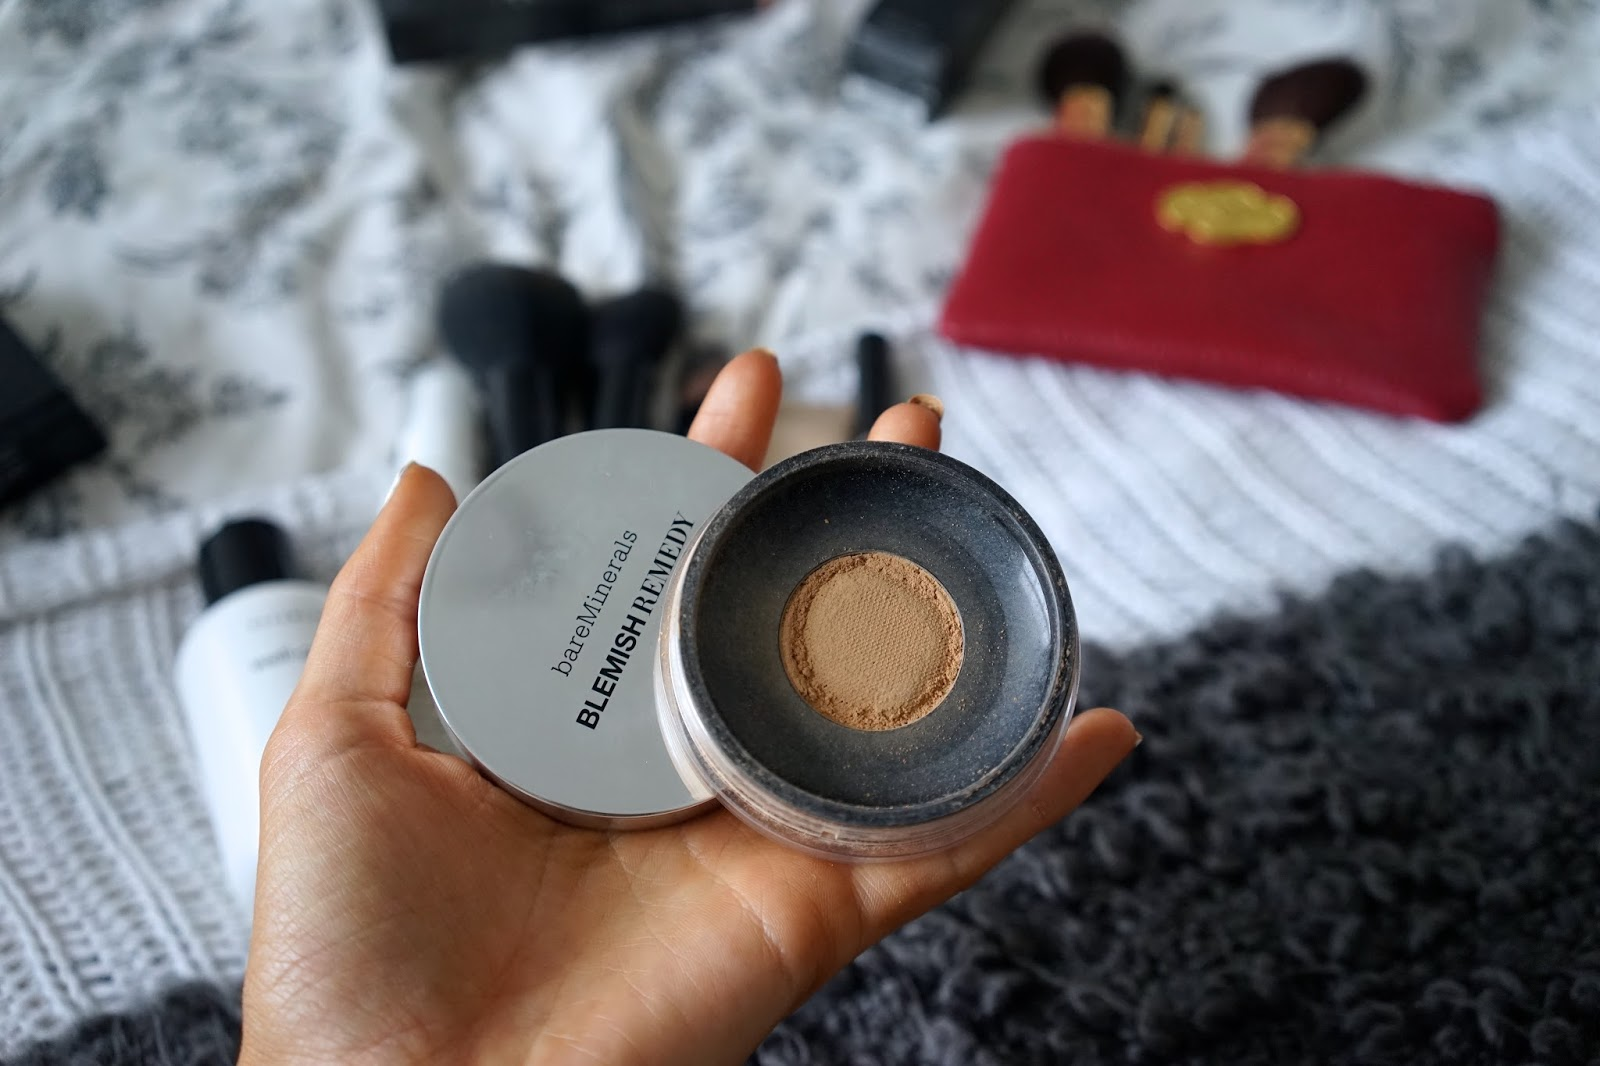 BareMinerals Blemish Remedy Powder